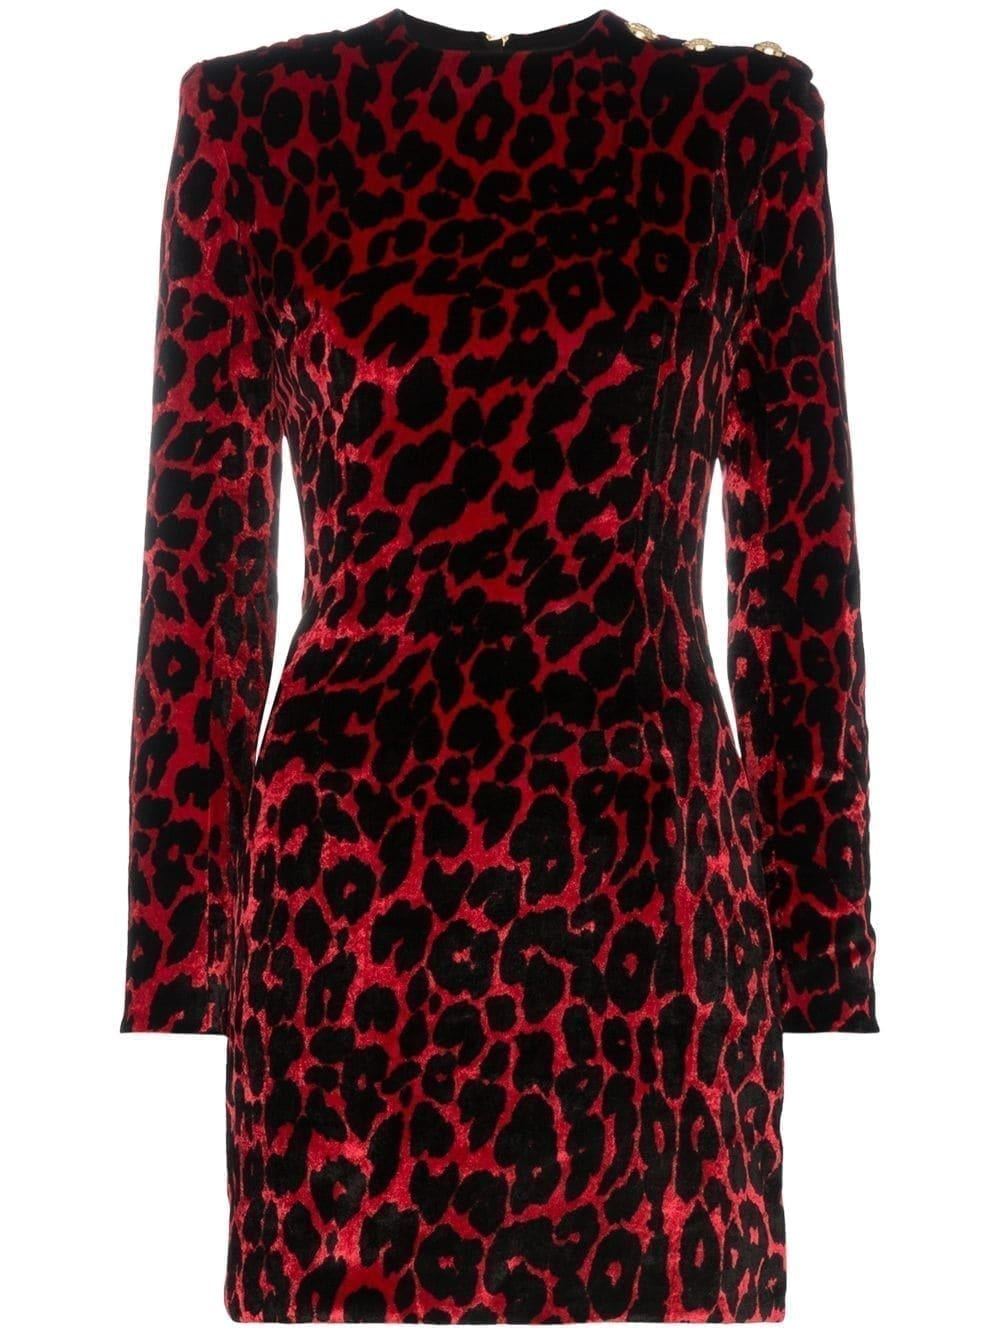 Balmain Leopard Print Mini Red Dress